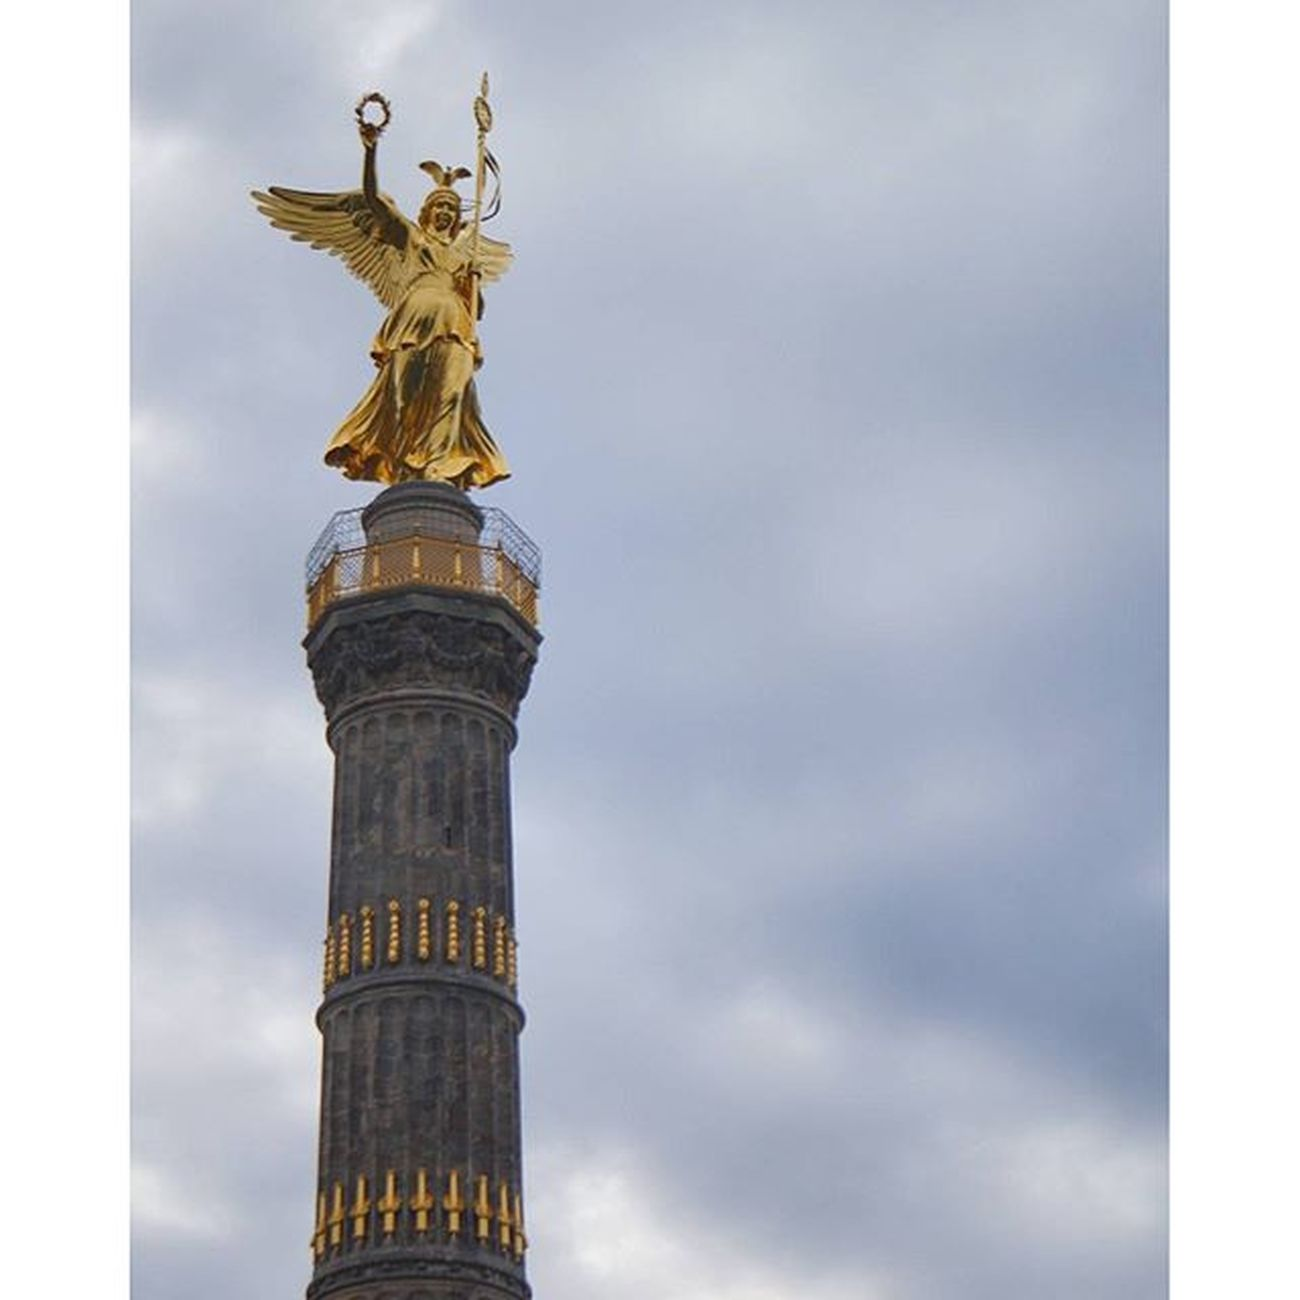 Beautiful Monument and Landmark . the Victorycolumn SiegesSäule at the GroßerStern . berlin Deutschland Germany . Taken by my SonyAlpha dslr dslt a57 . تذكار معلم سياحي تمثال برلين المانيا